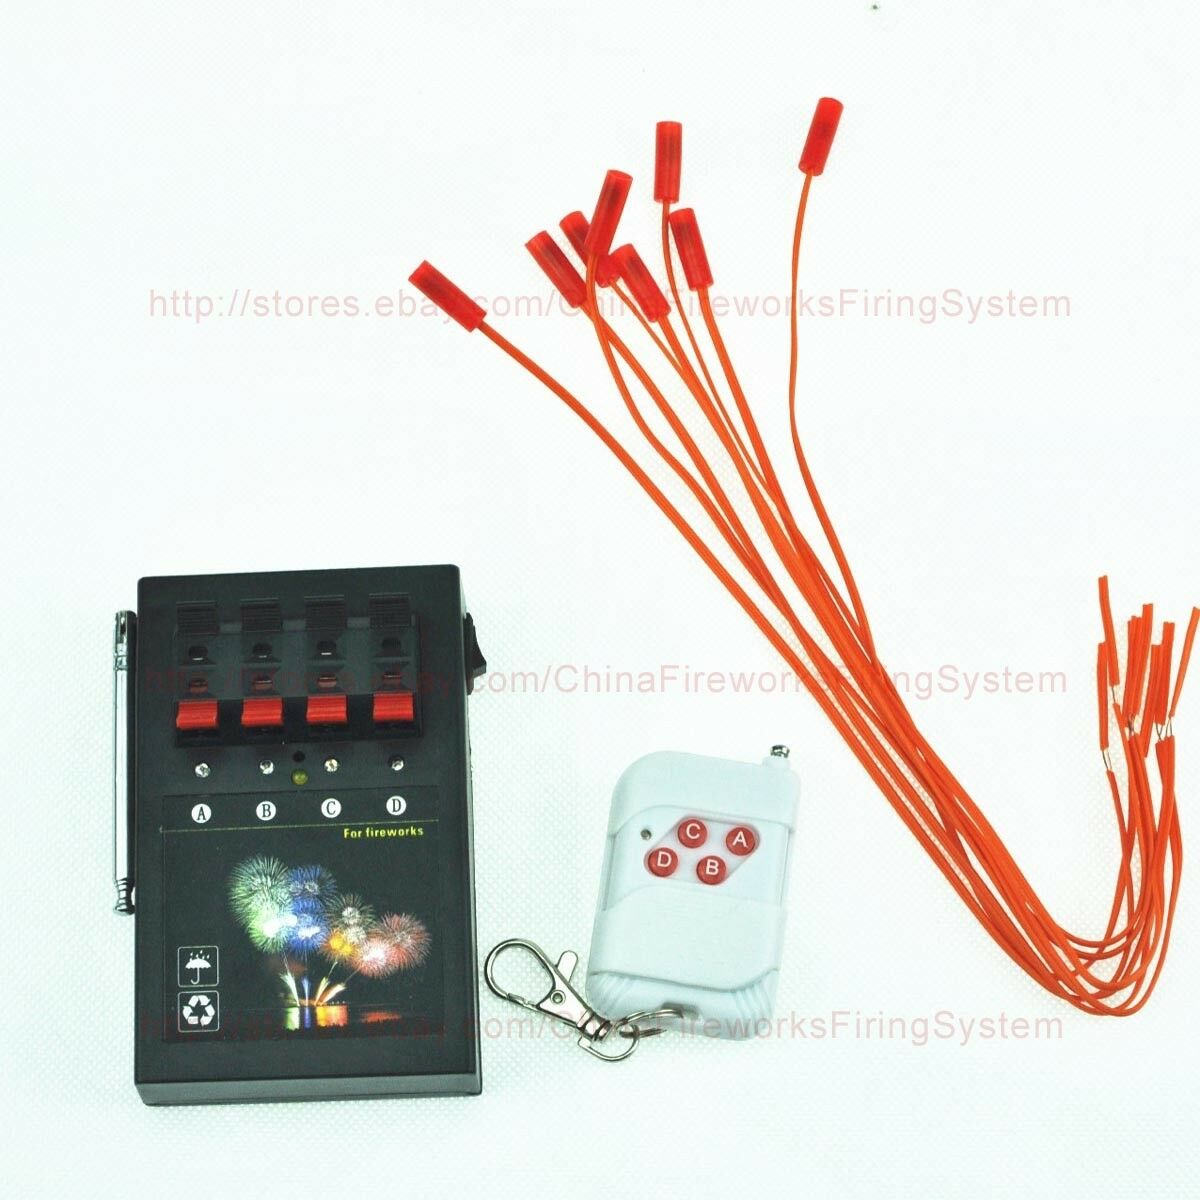 4cues Fireworks Firing System Programmable Remote Party Ebay Basics Of Electrical Firework And Pyrotechnics Picture 1 8